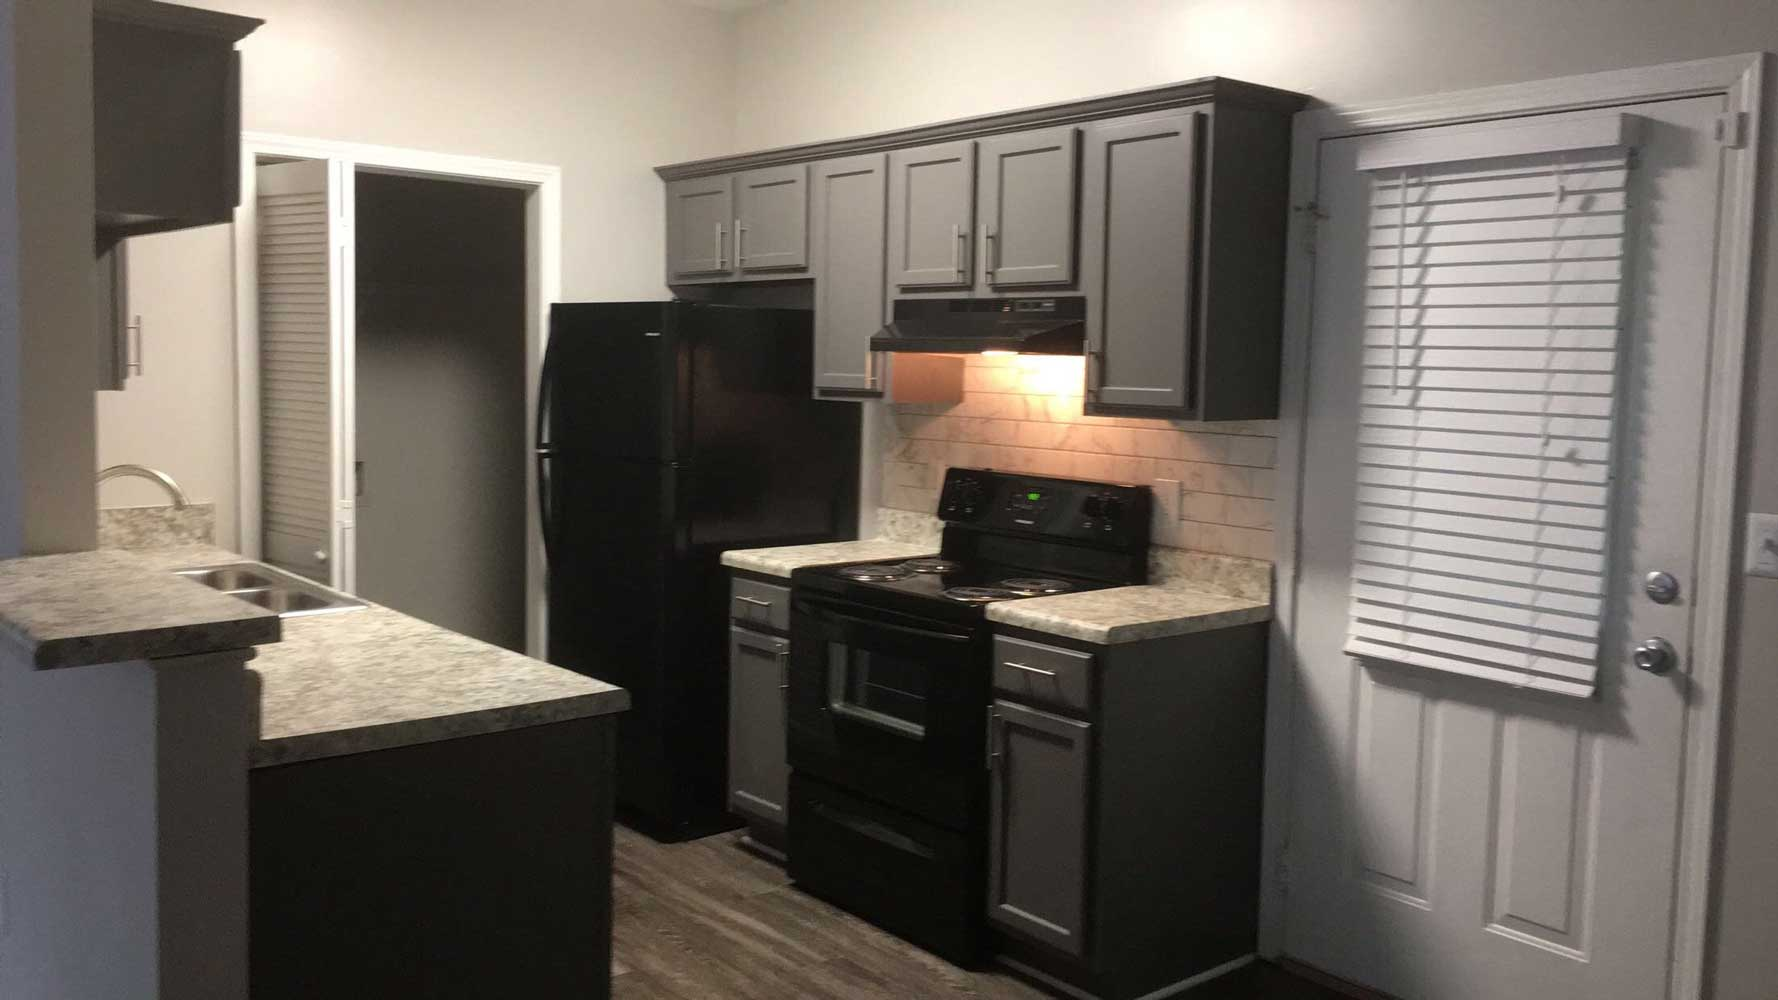 Ample Storage Space at Tall Oaks Apartments and Villas in Conyers, GA